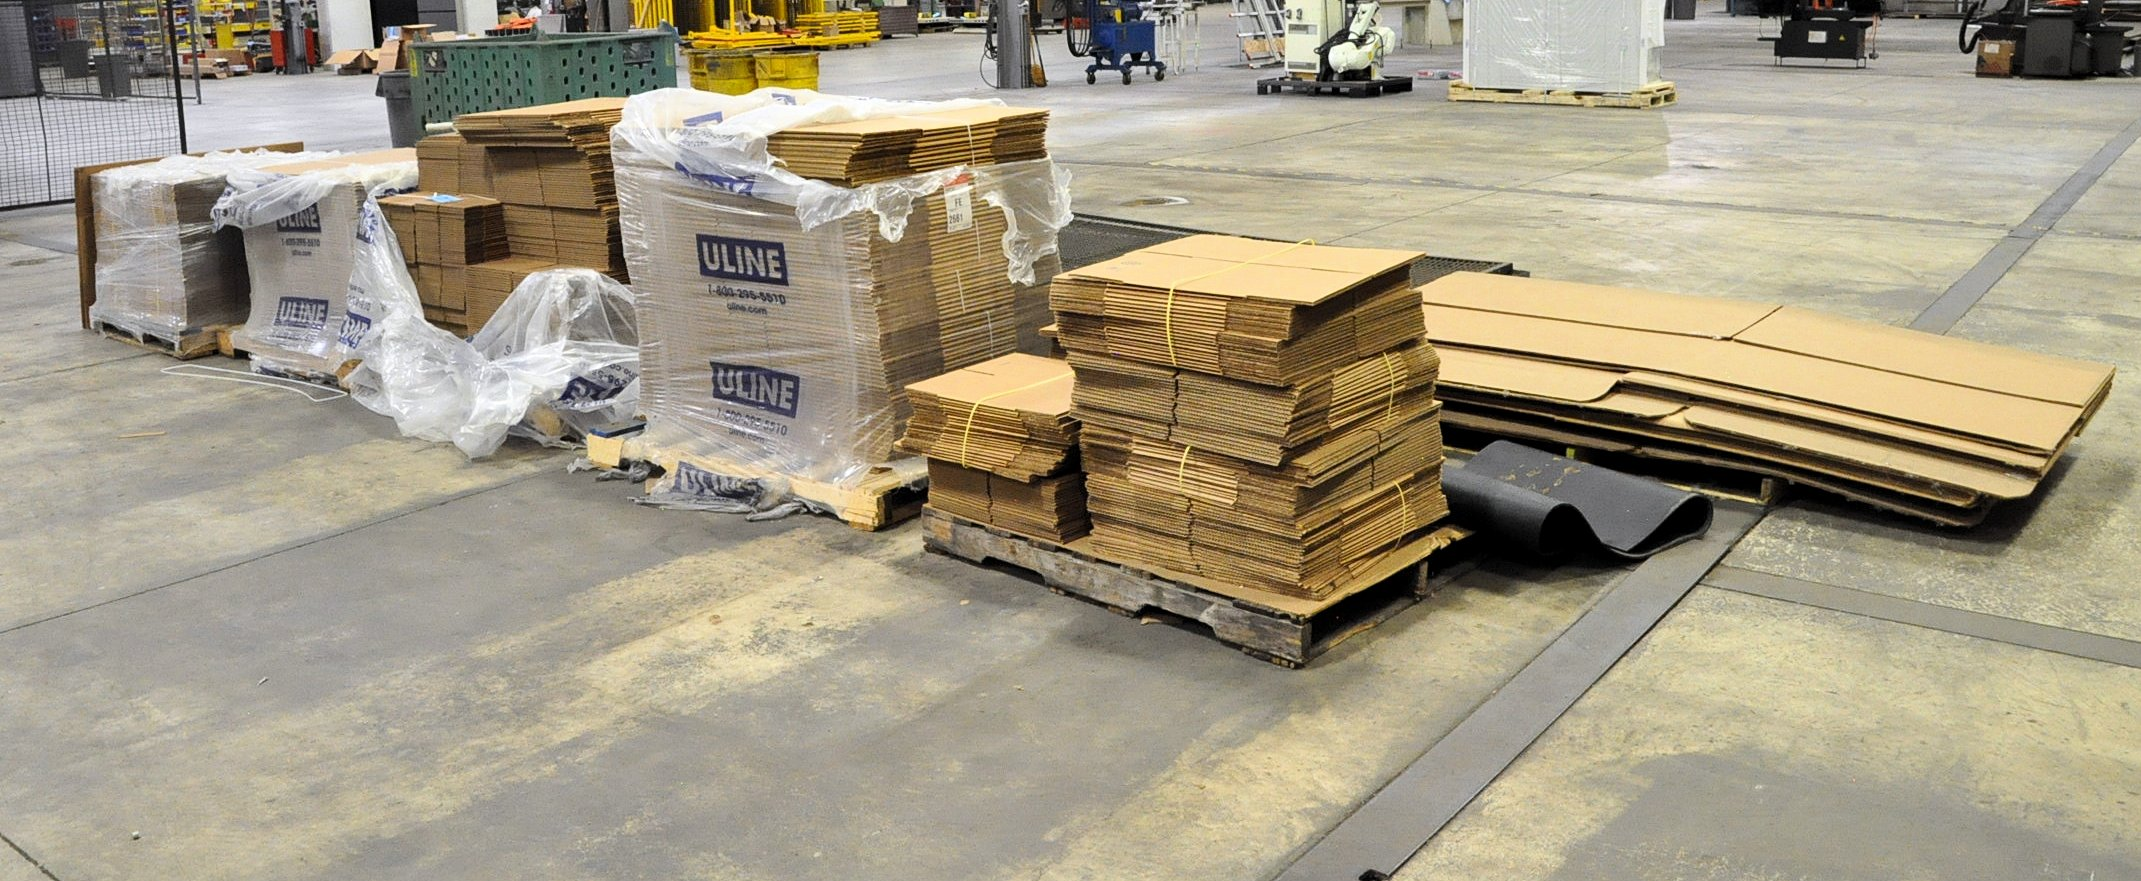 "Lot-Shipping Boxes, 9"" x 9"" x 9"", 24"" x 18"" x 12"", 12"" x 12"" x 12"", and Extra Long Boxes"